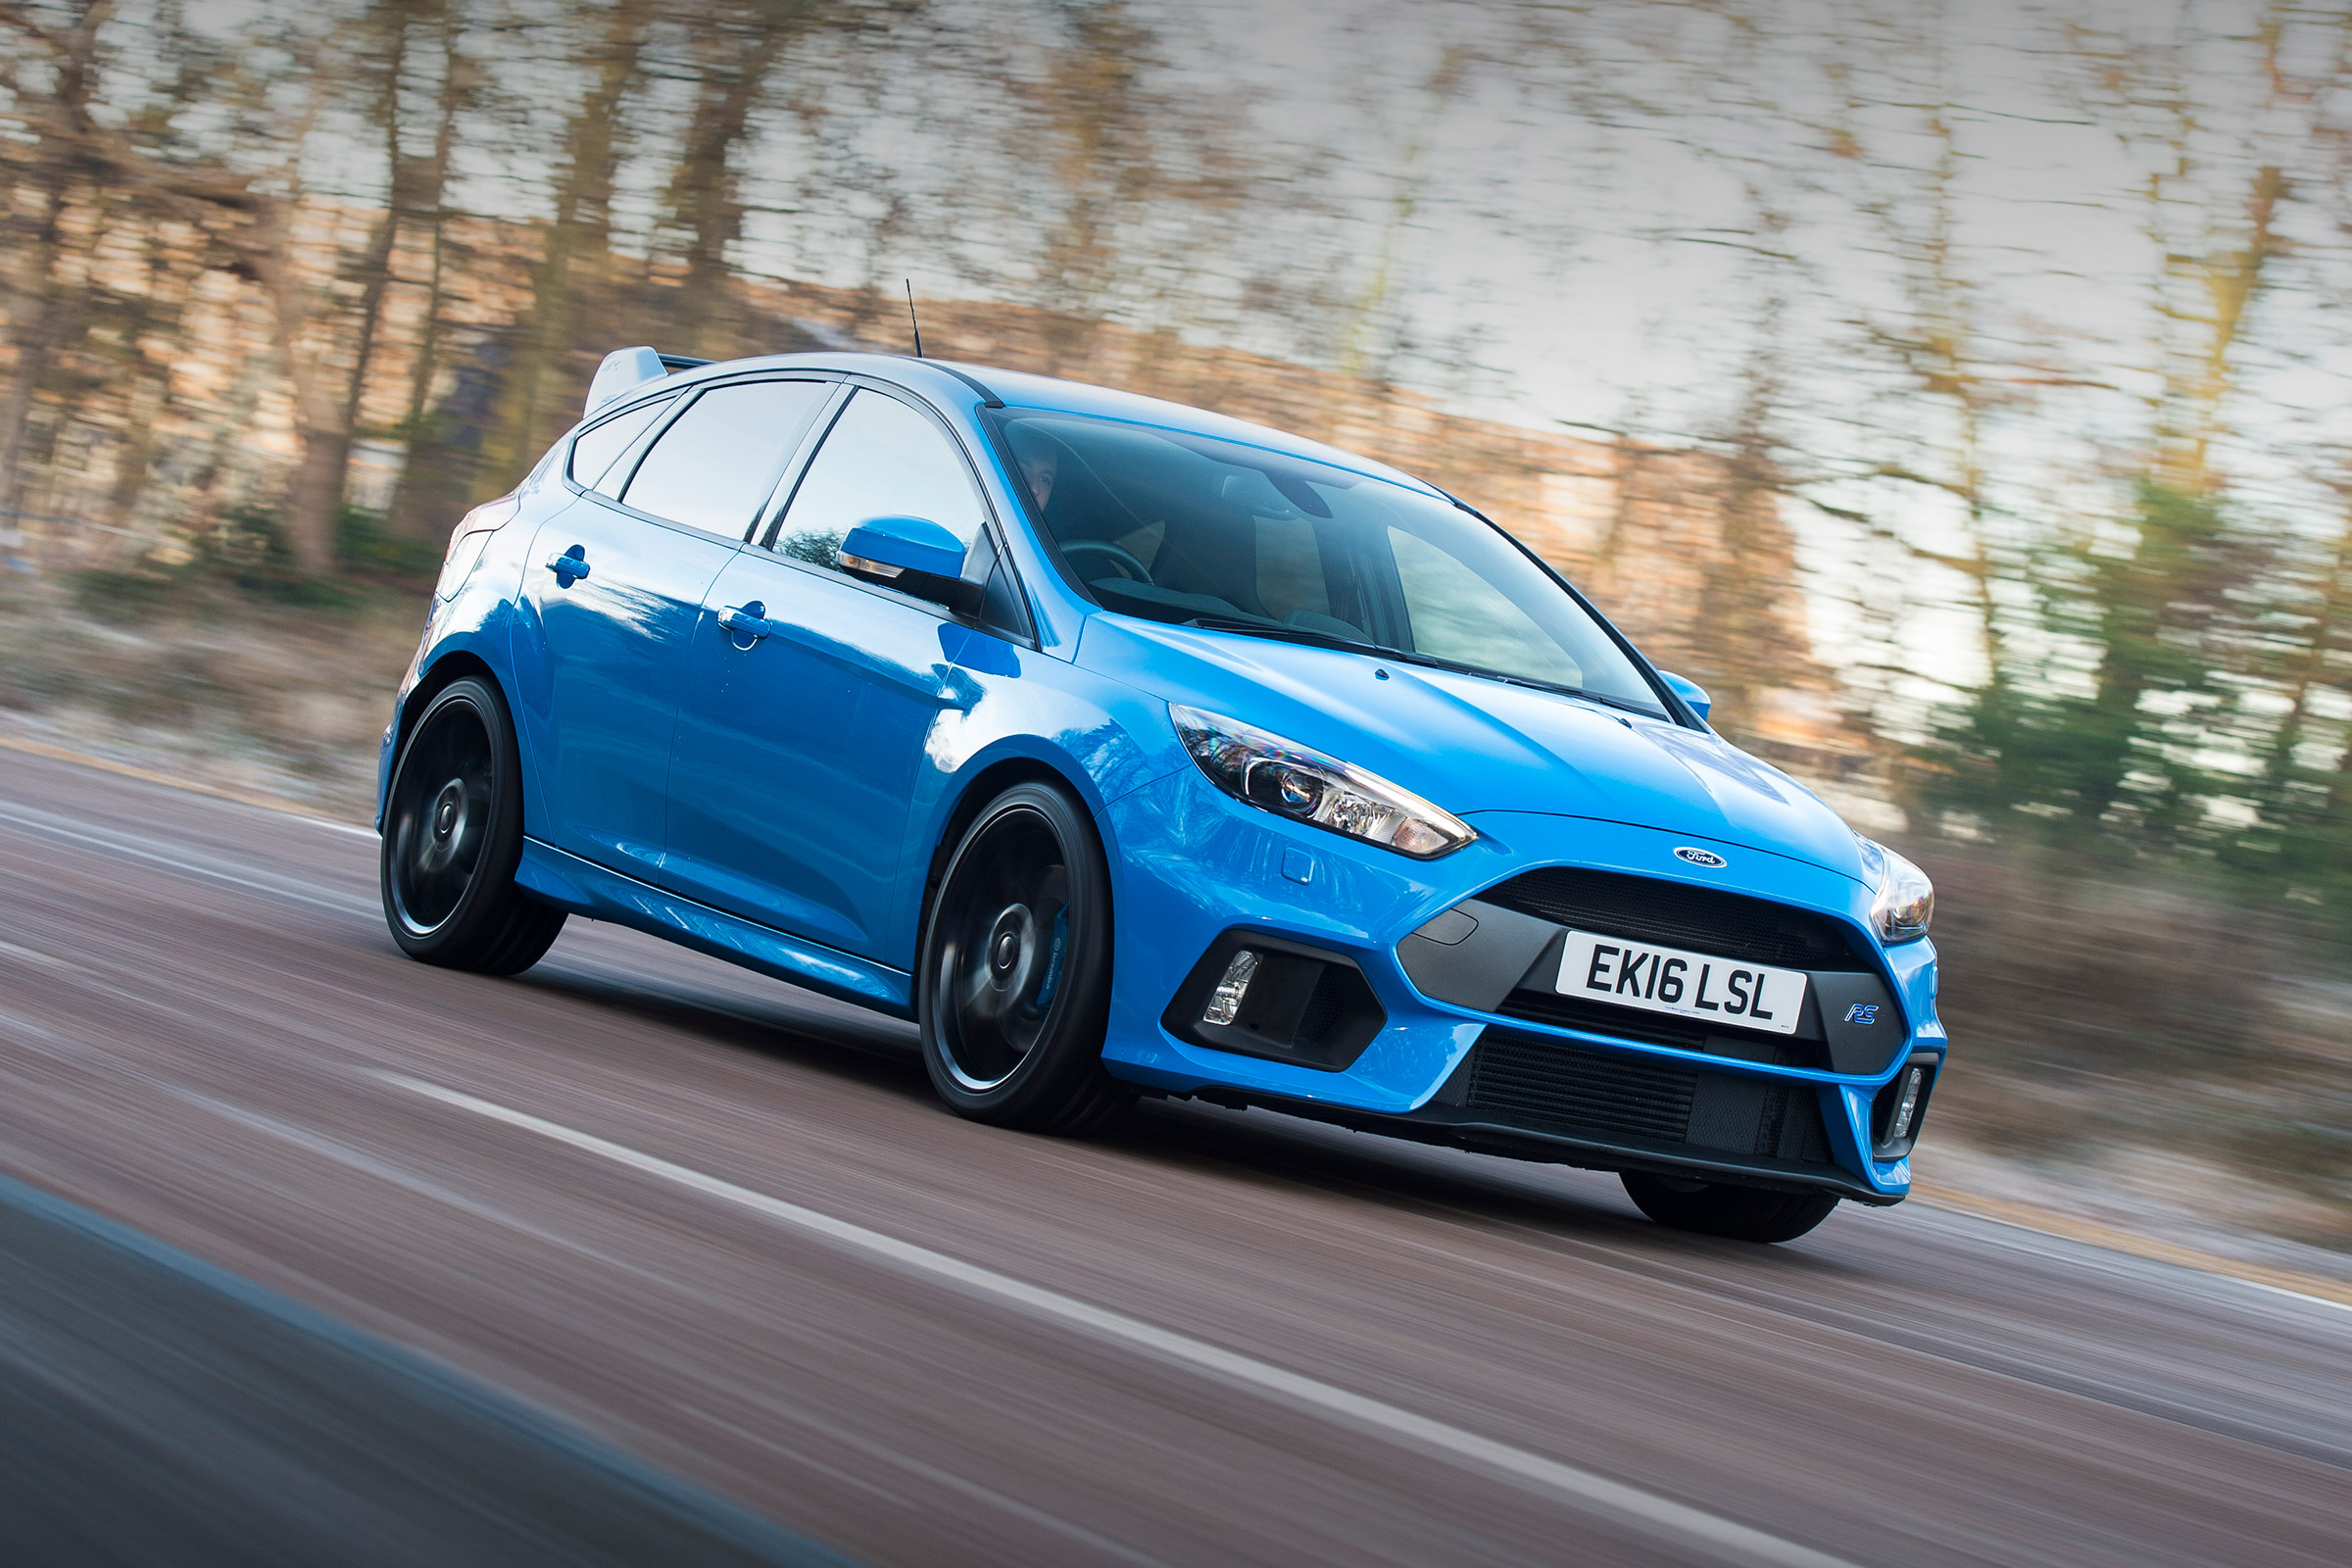 2017 Ford Focus RS Pictures Gallery (23 Images)